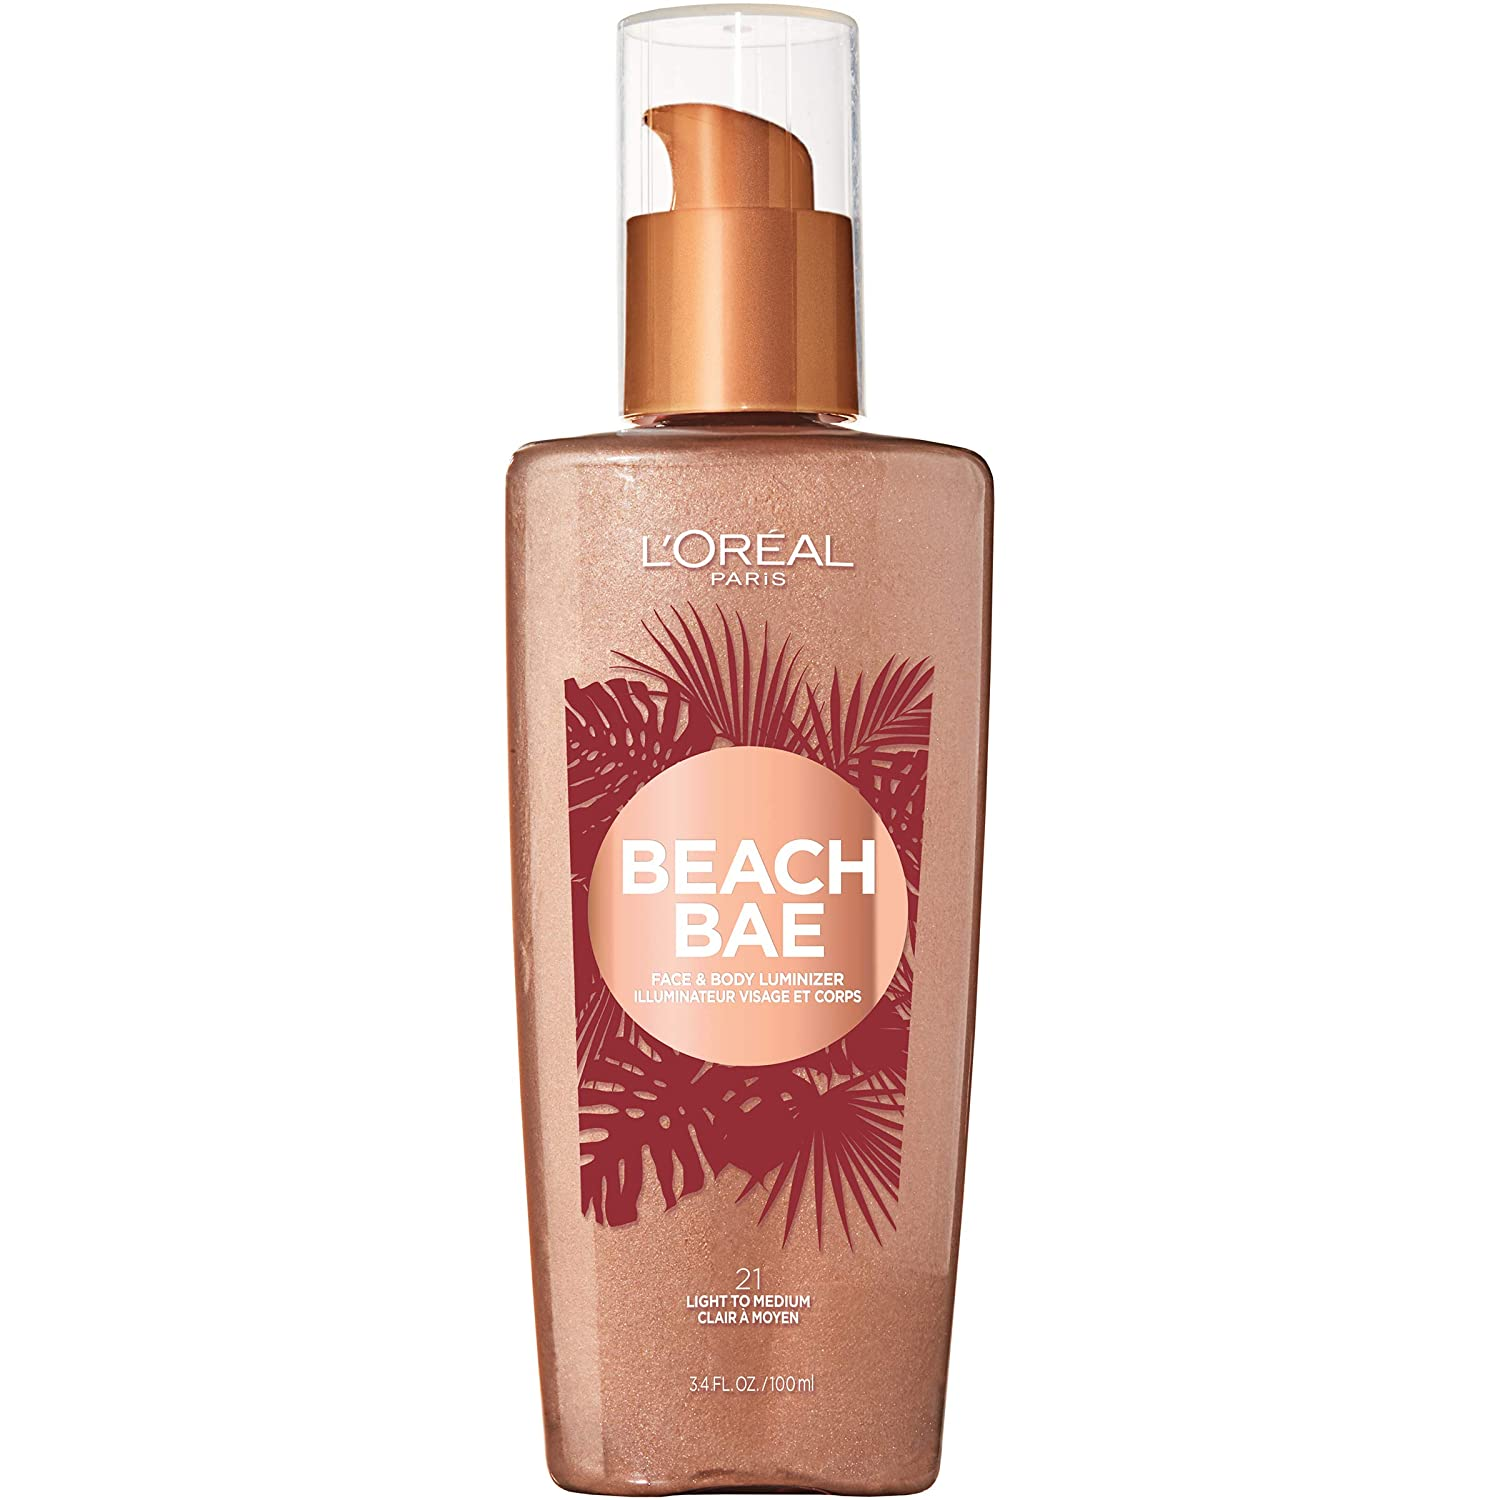 L'Oreal Paris Makeup Summer Belle Makeup, Beach Bae Face & Body Liquid Luminizer, Light to Medium, 3.9 fl. oz.